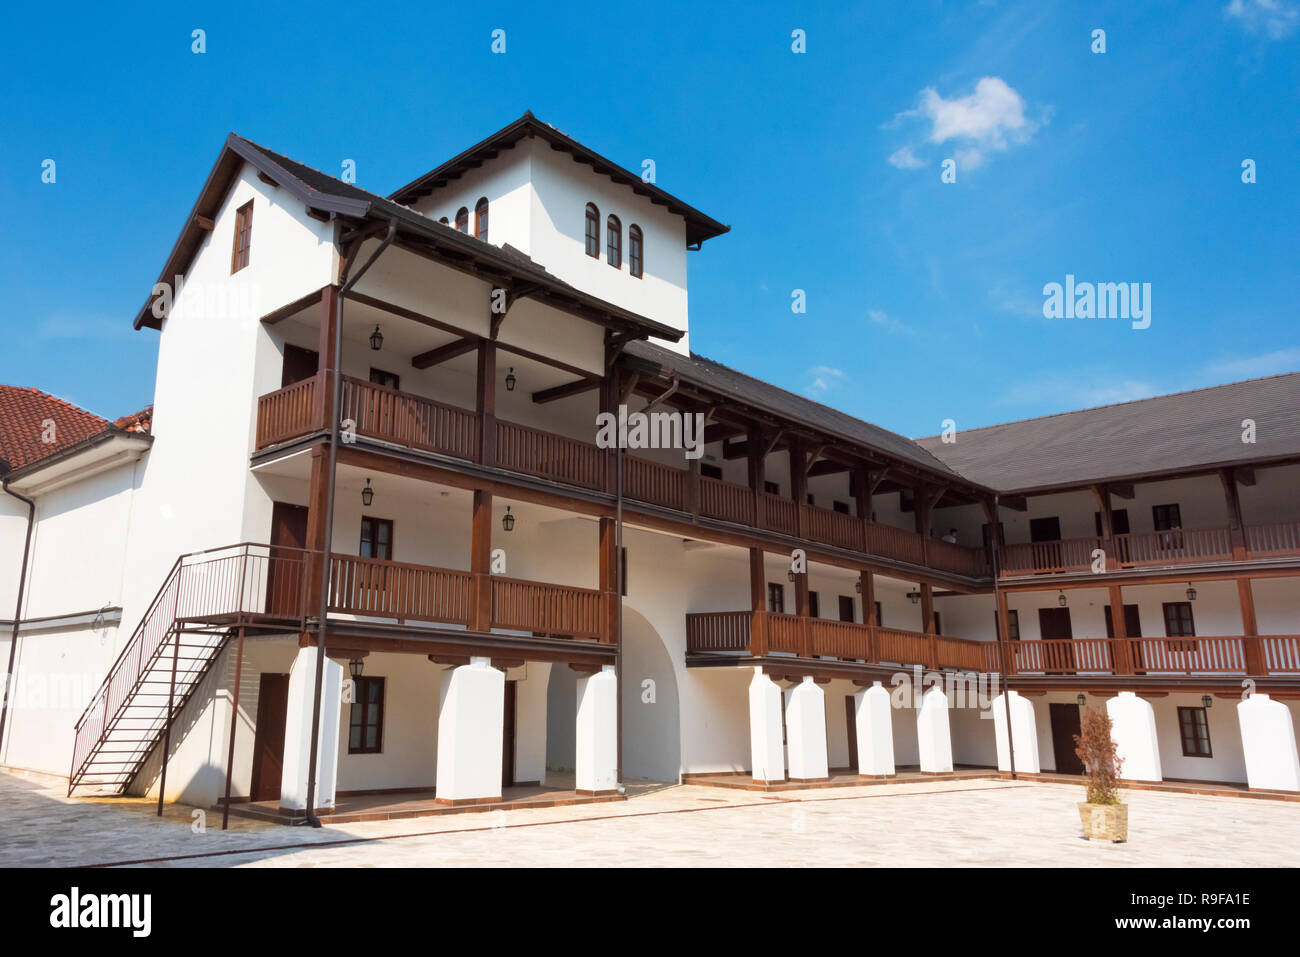 Building in Andricgrad (also known as Andric's town or Stone town) dedicated to the famous writer, Ivo Andric, Visegrad, Bosnia and Herzegovina - Stock Image